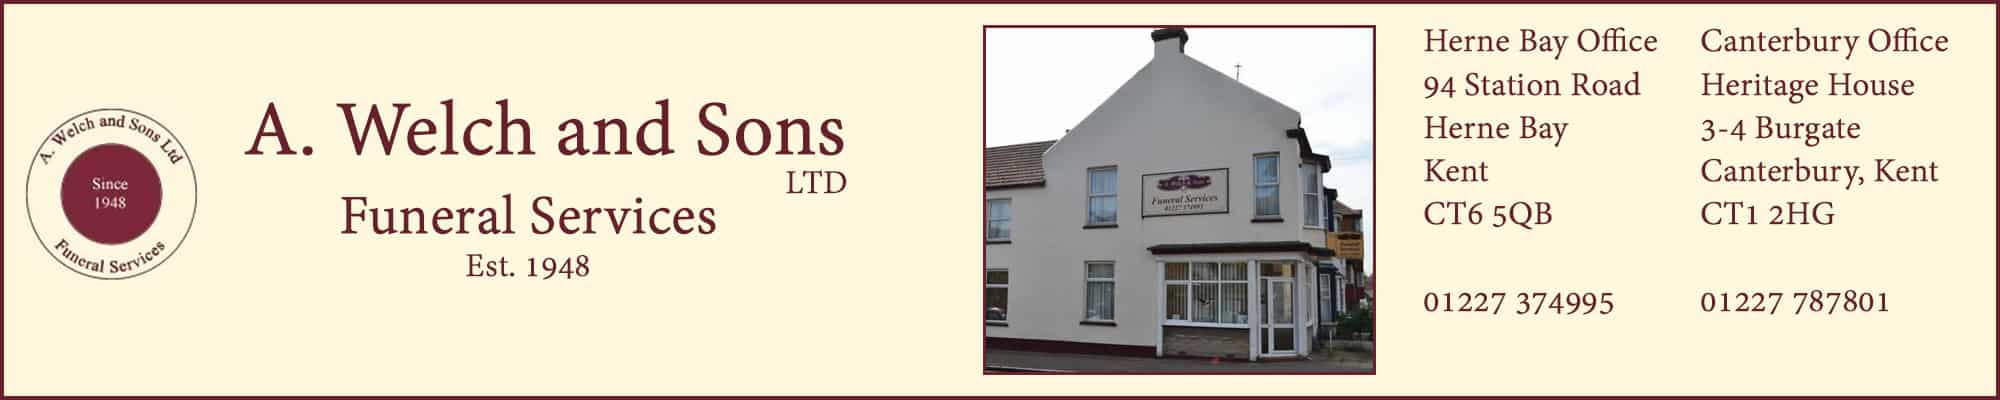 A Welch and Sons | Funeral Directors | Herne Bay & Canterbury